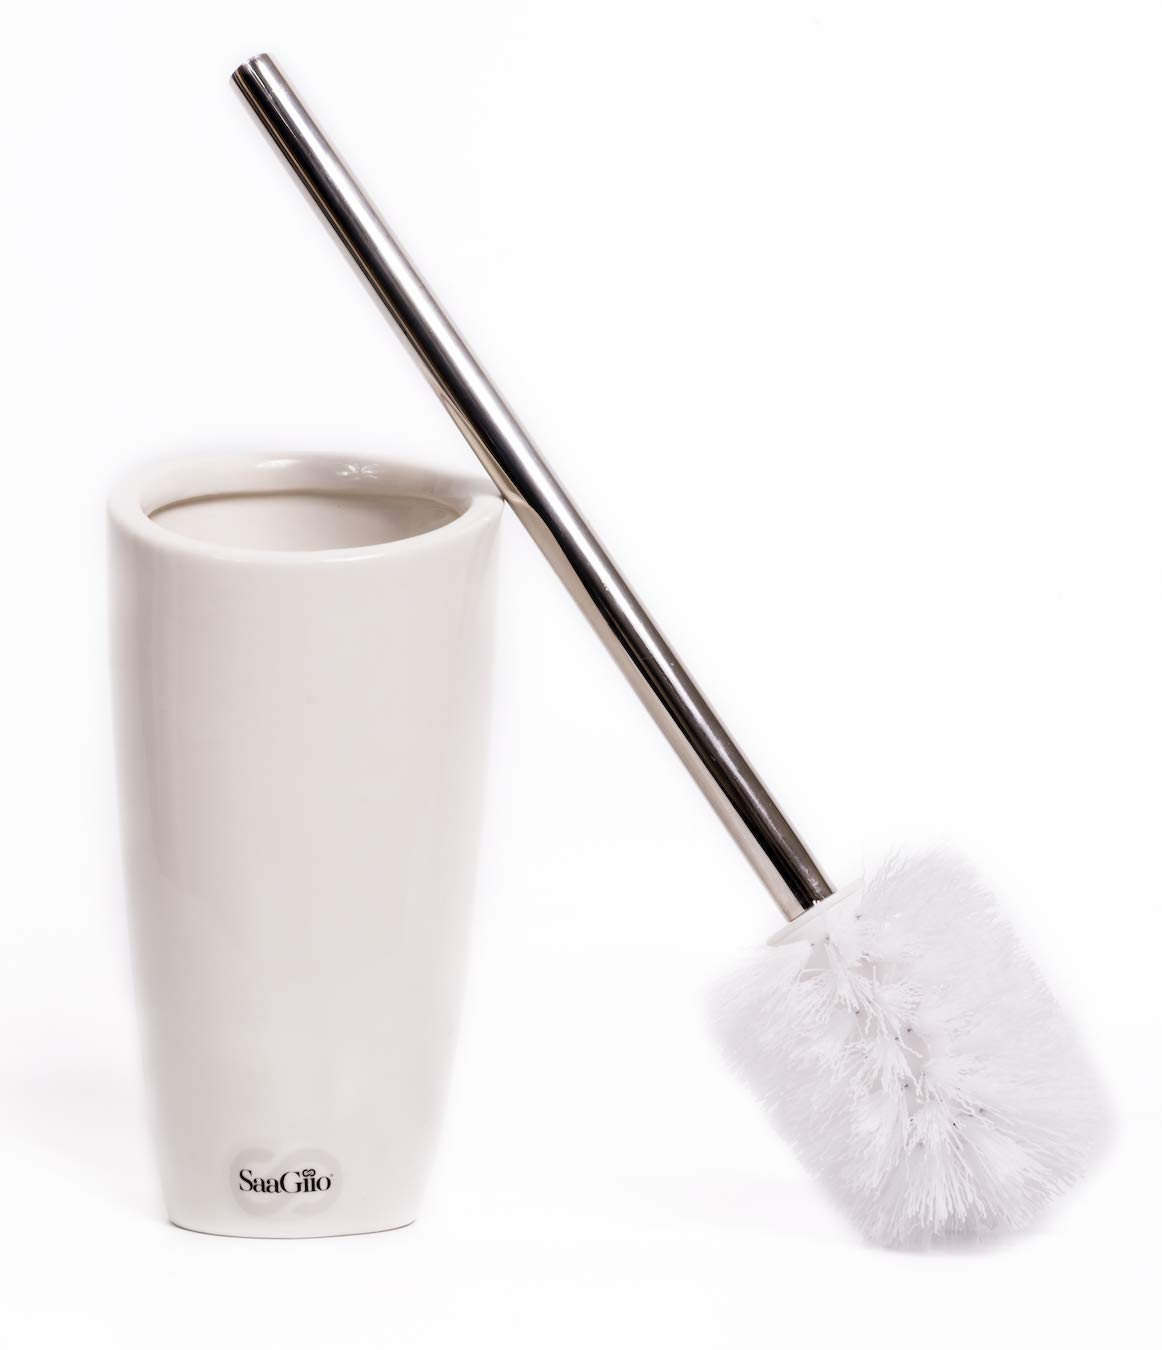 Luxury Toilet Brush Set handcrafted from Ceramic Stoneware material and brush with 304 steel handle SaaGiio Toilet brush and holder